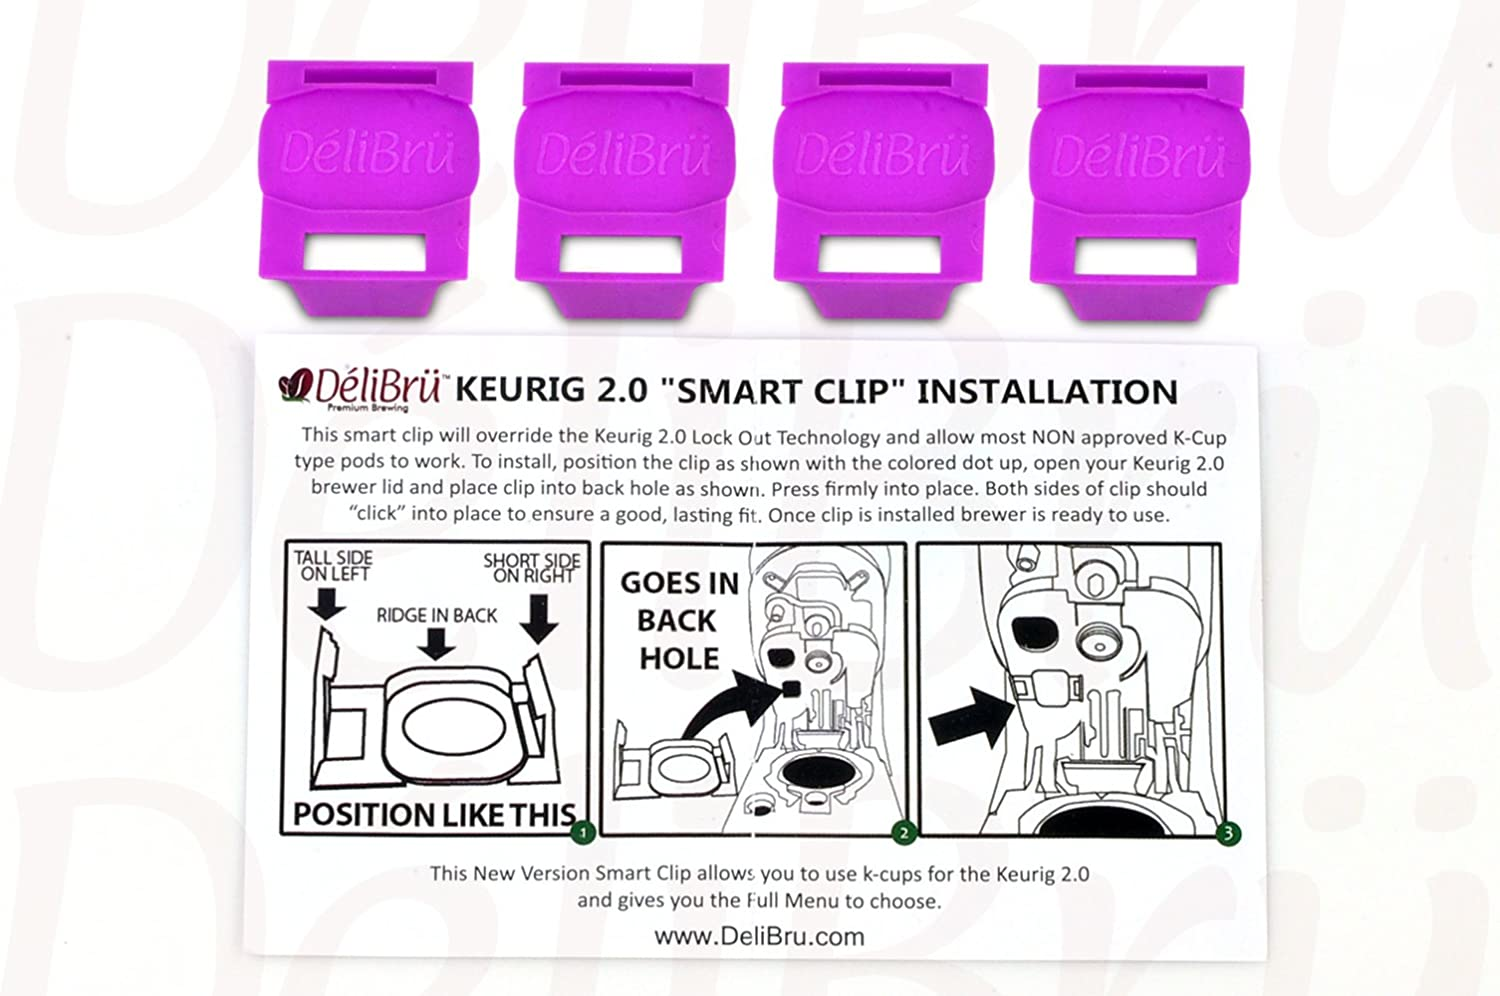 4Pack Freedom Clip Smart Clip Brews Any Brand K-Cup Coffee Pods in Keurig 2.0 Coffee Machines by Delibru